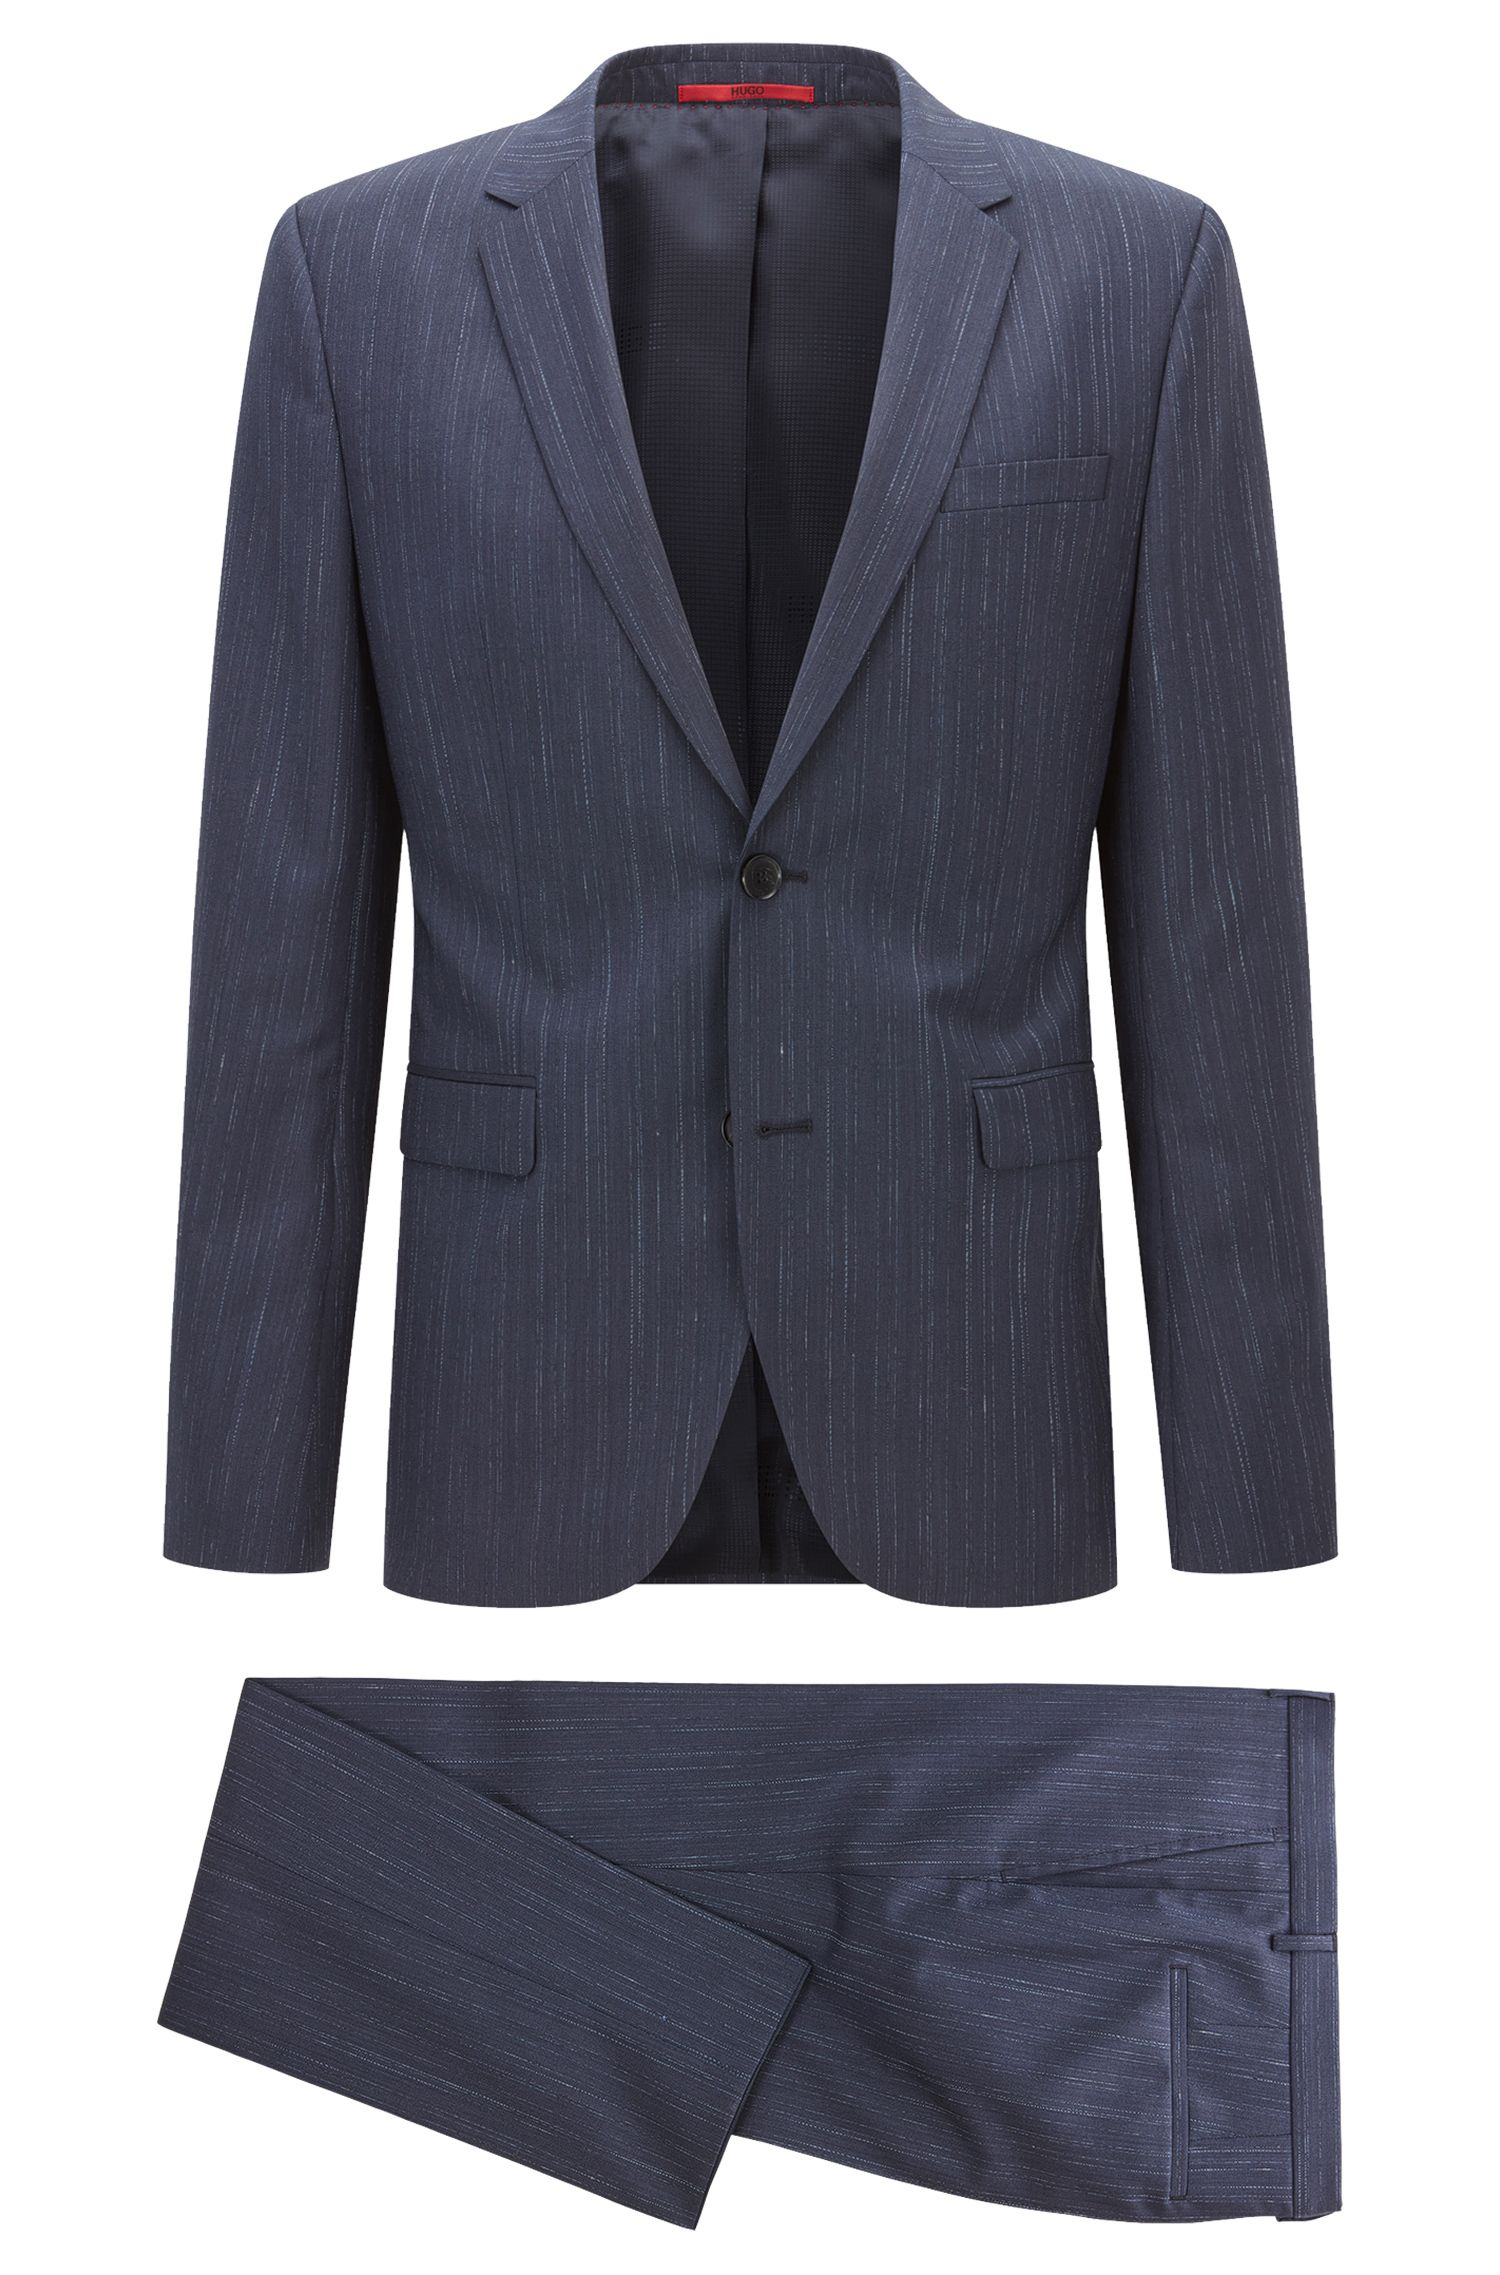 Heathered Italian Super 110 Virgin Wool Suit, Slim Fit | Astian/Hets